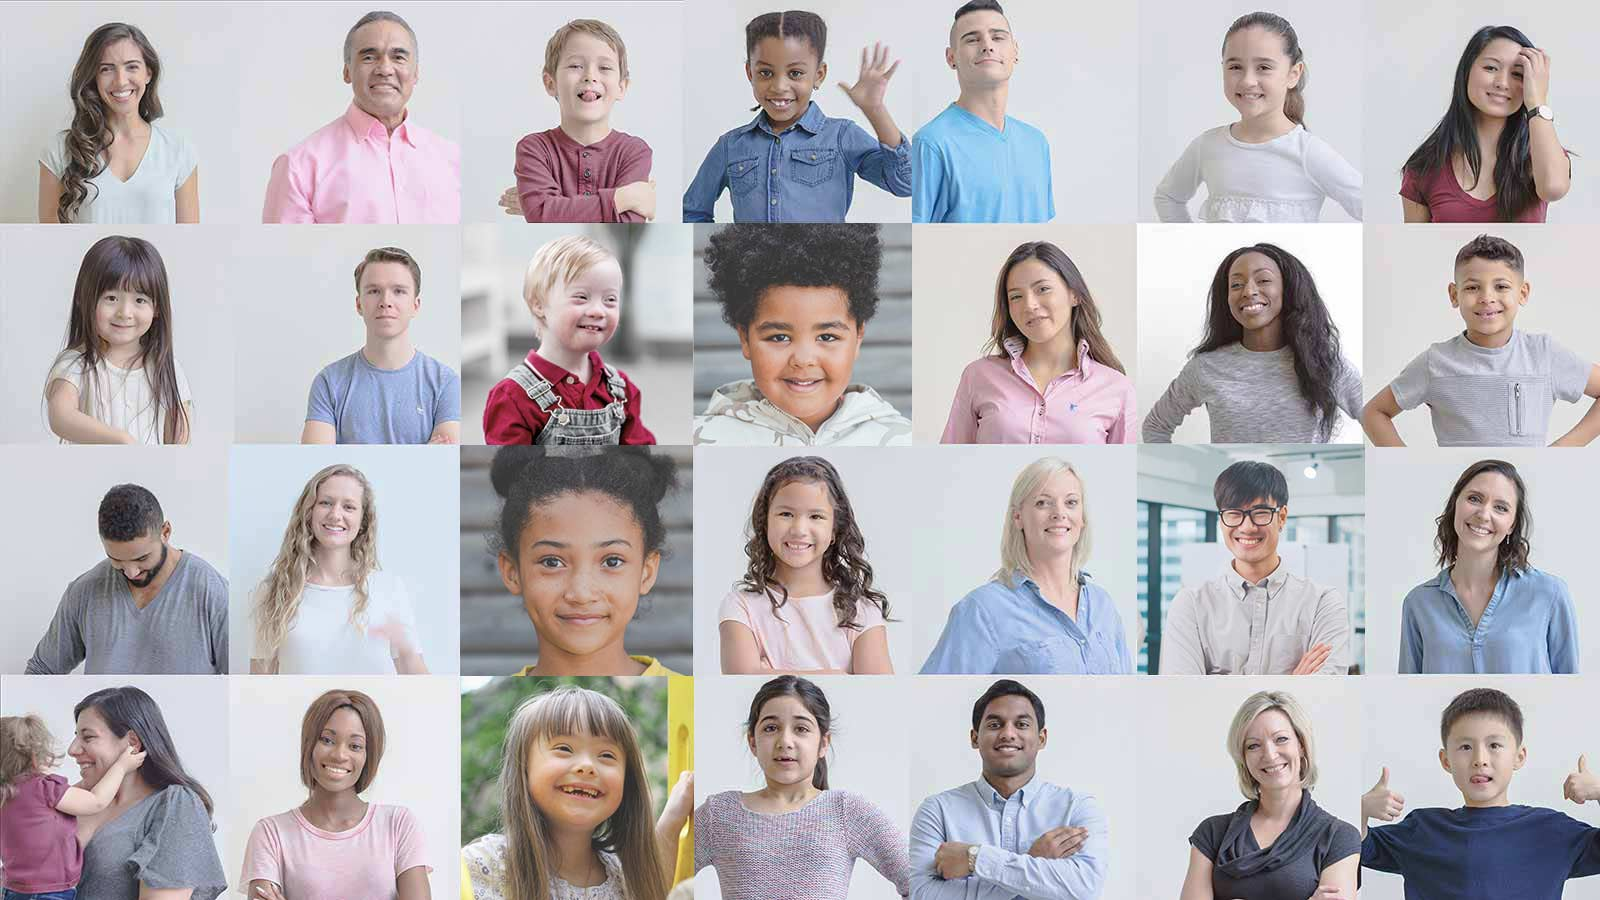 A grid of many young children smiling and happy